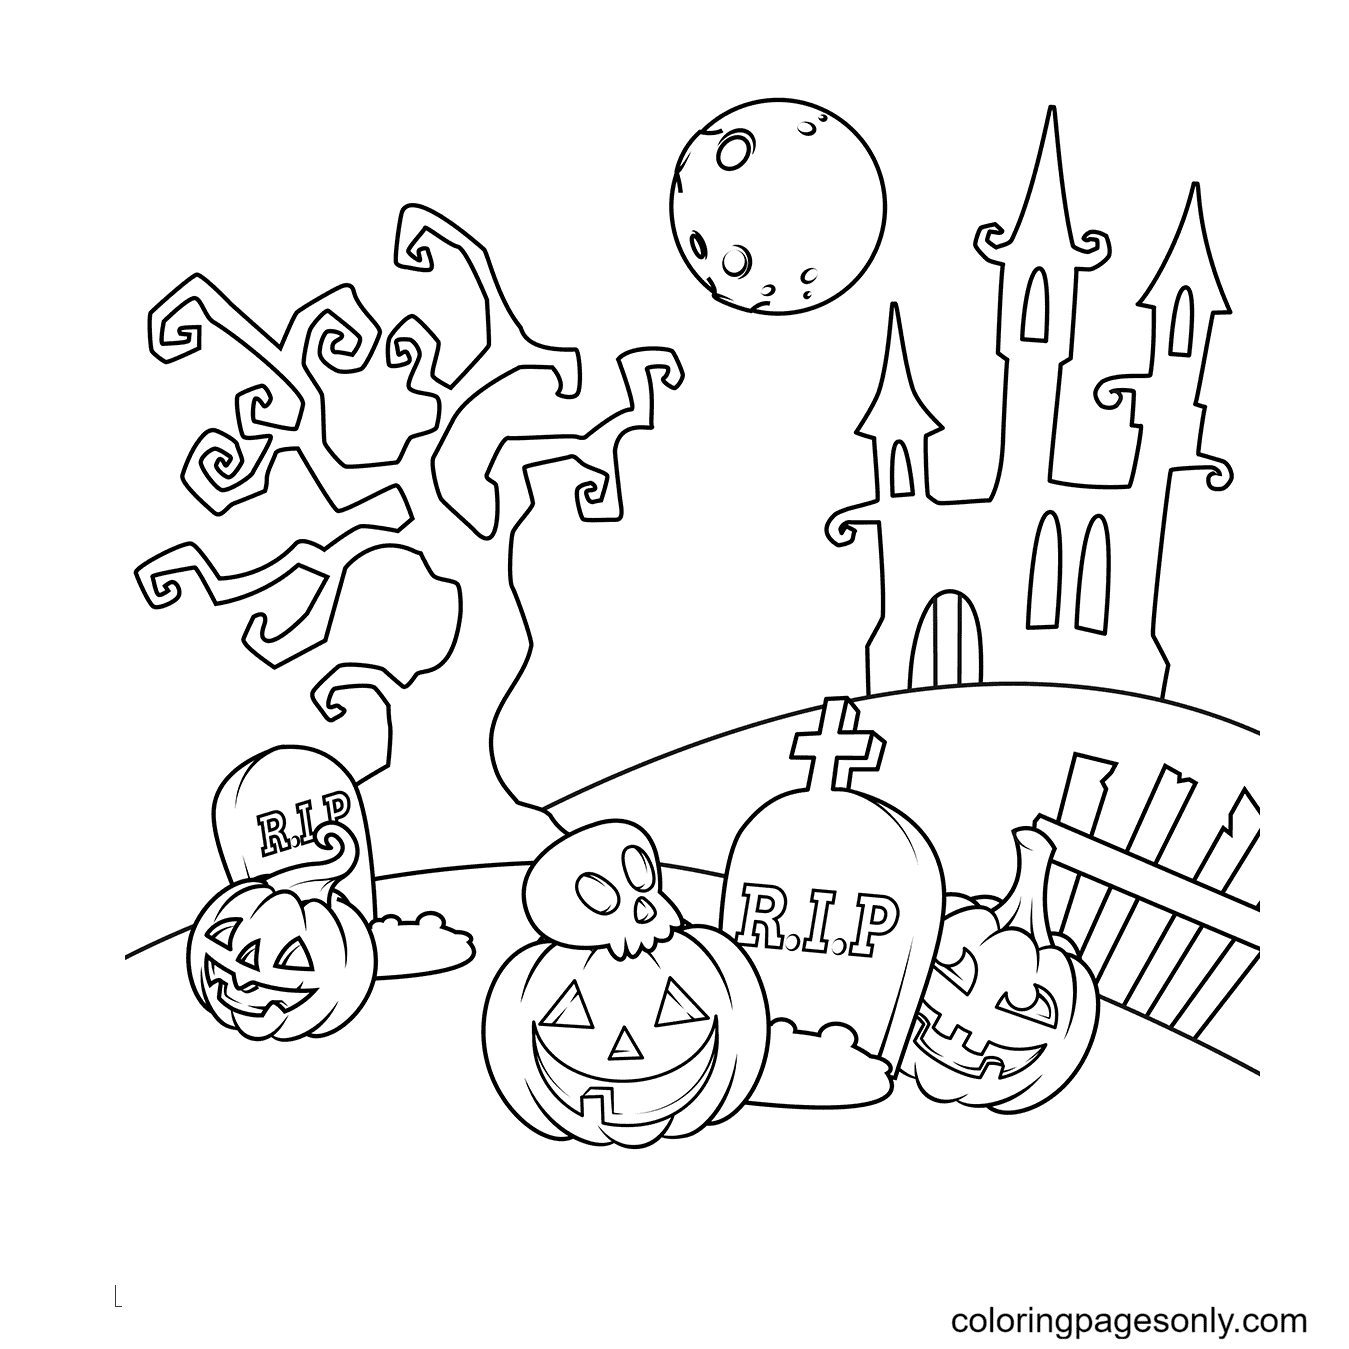 Haunted house and Pumpkin Lights Next to the Graves Coloring Page